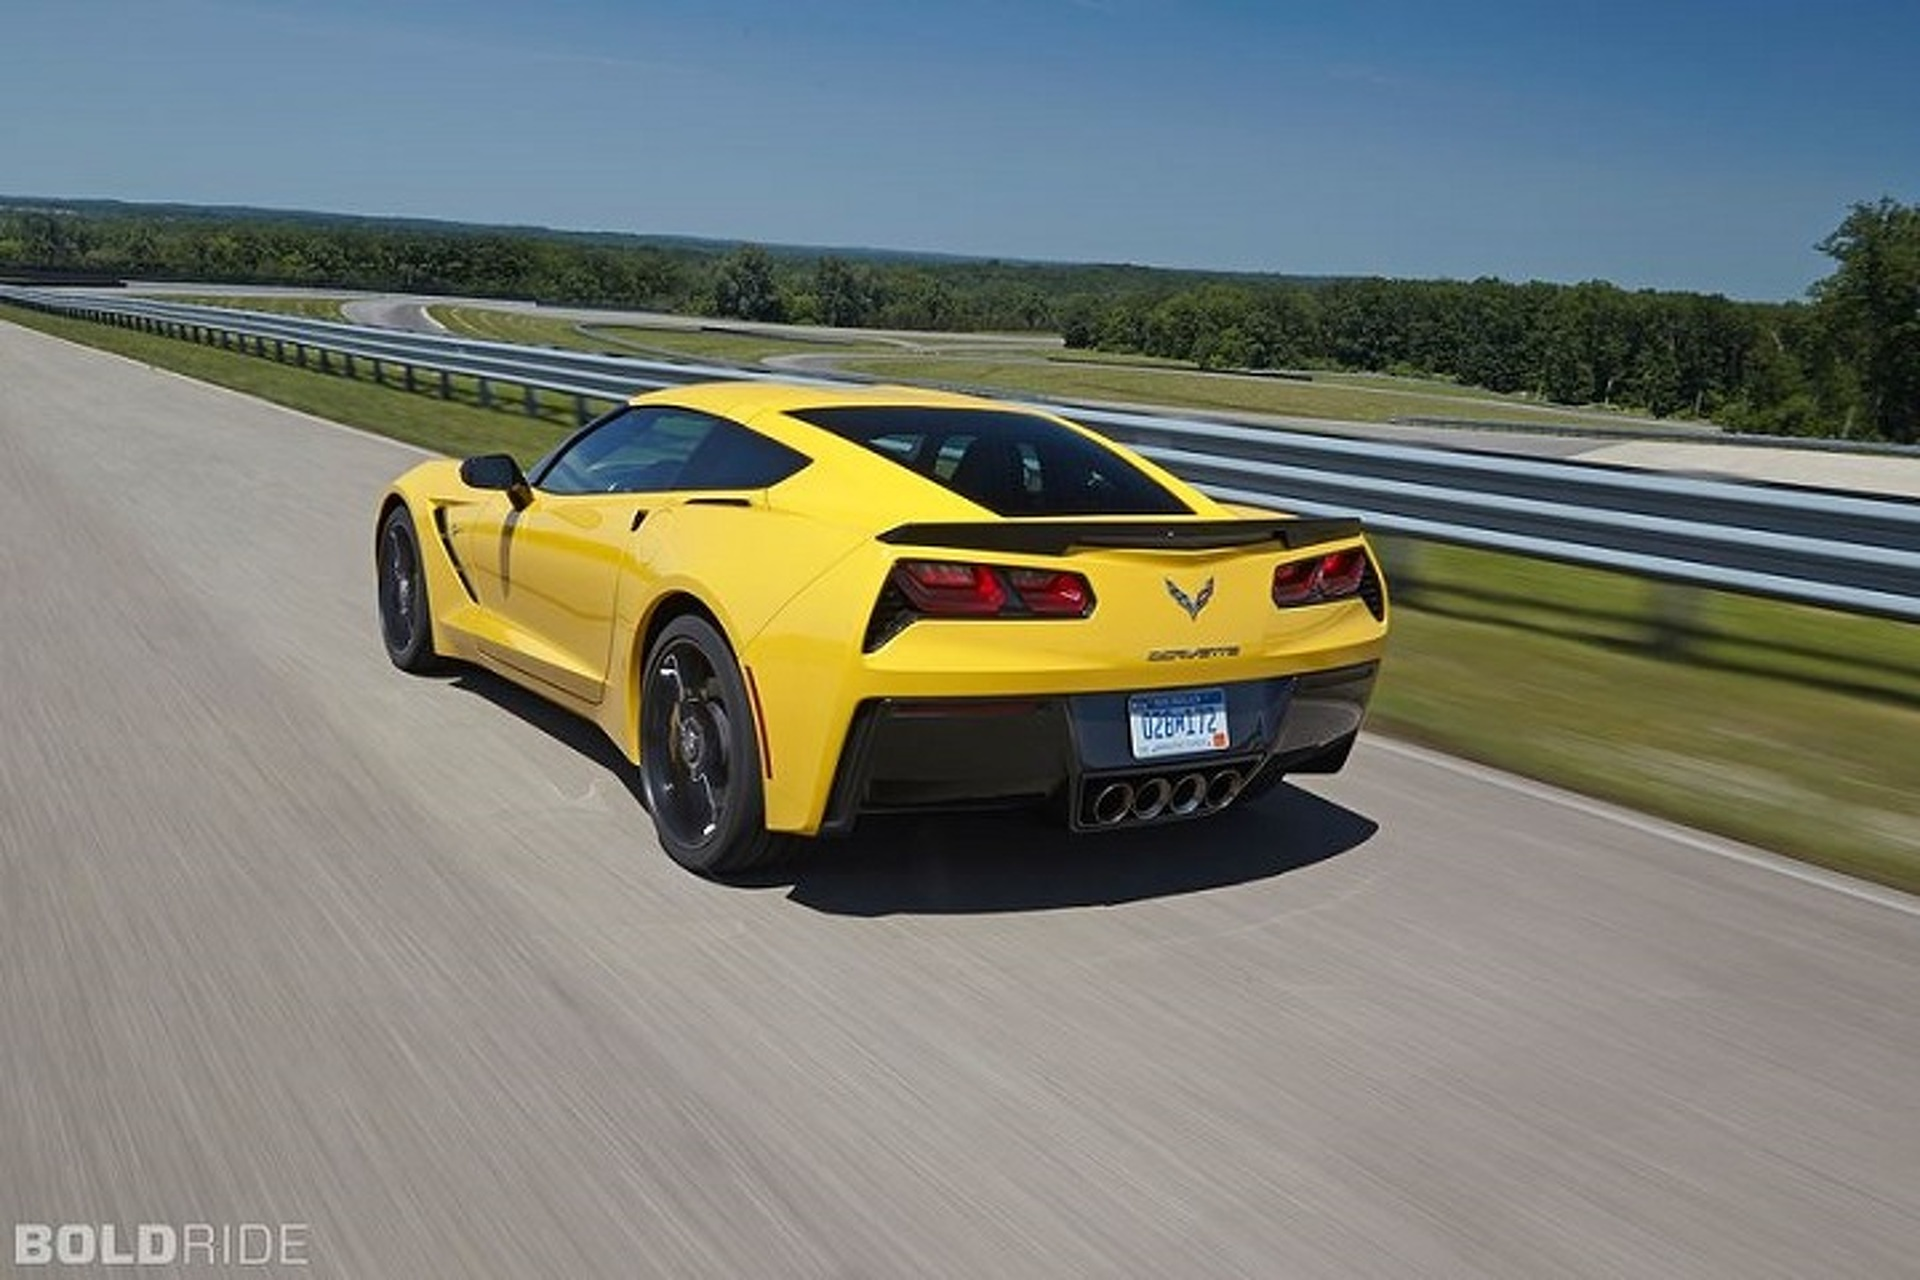 Watch This Show-Off Driver Nearly Wreck His Corvette